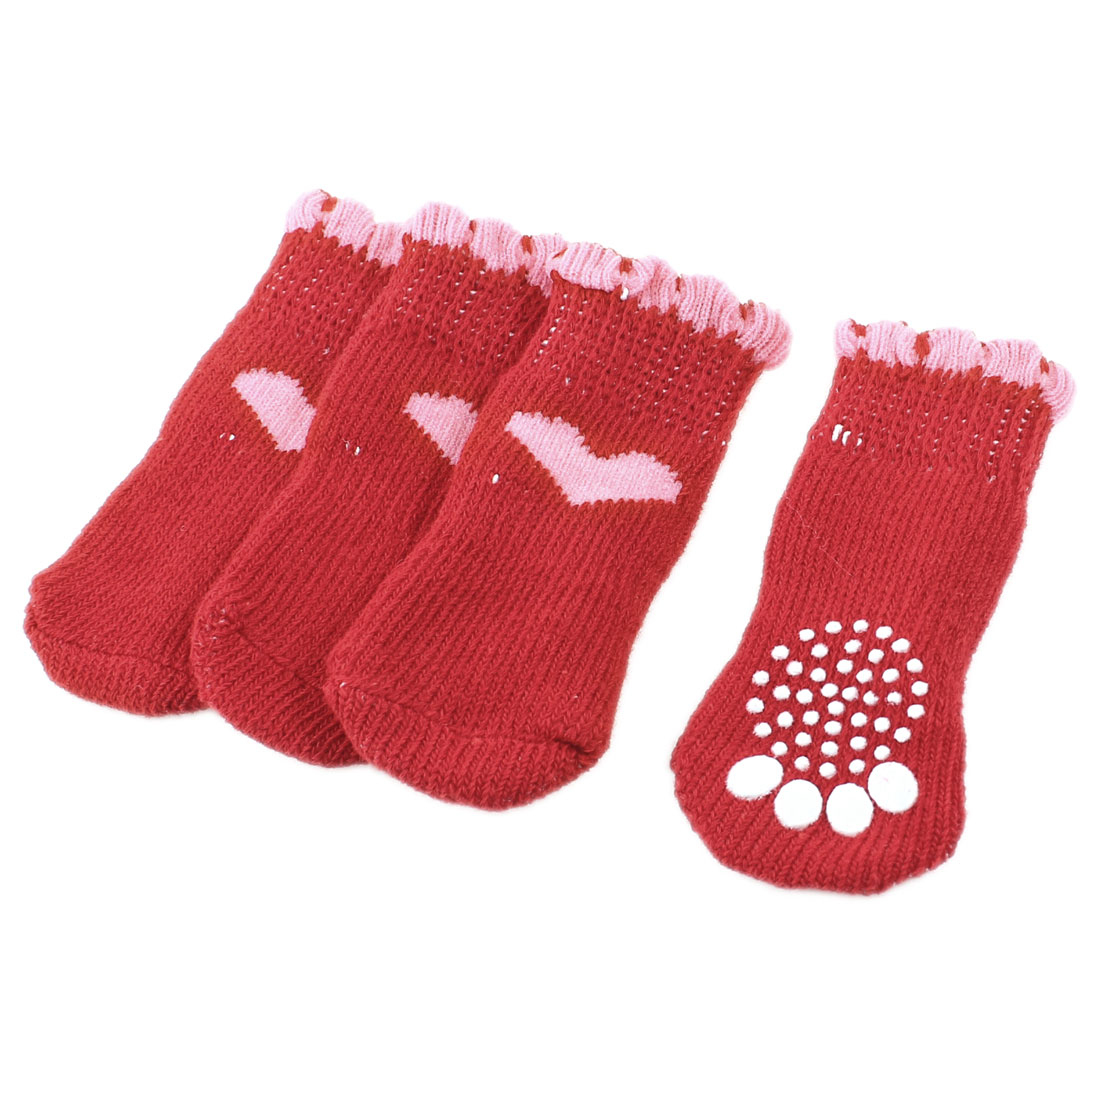 2 Pairs Red Nonslip Paw Printed Acrylic Doggie Puppy Pet Socks Size M